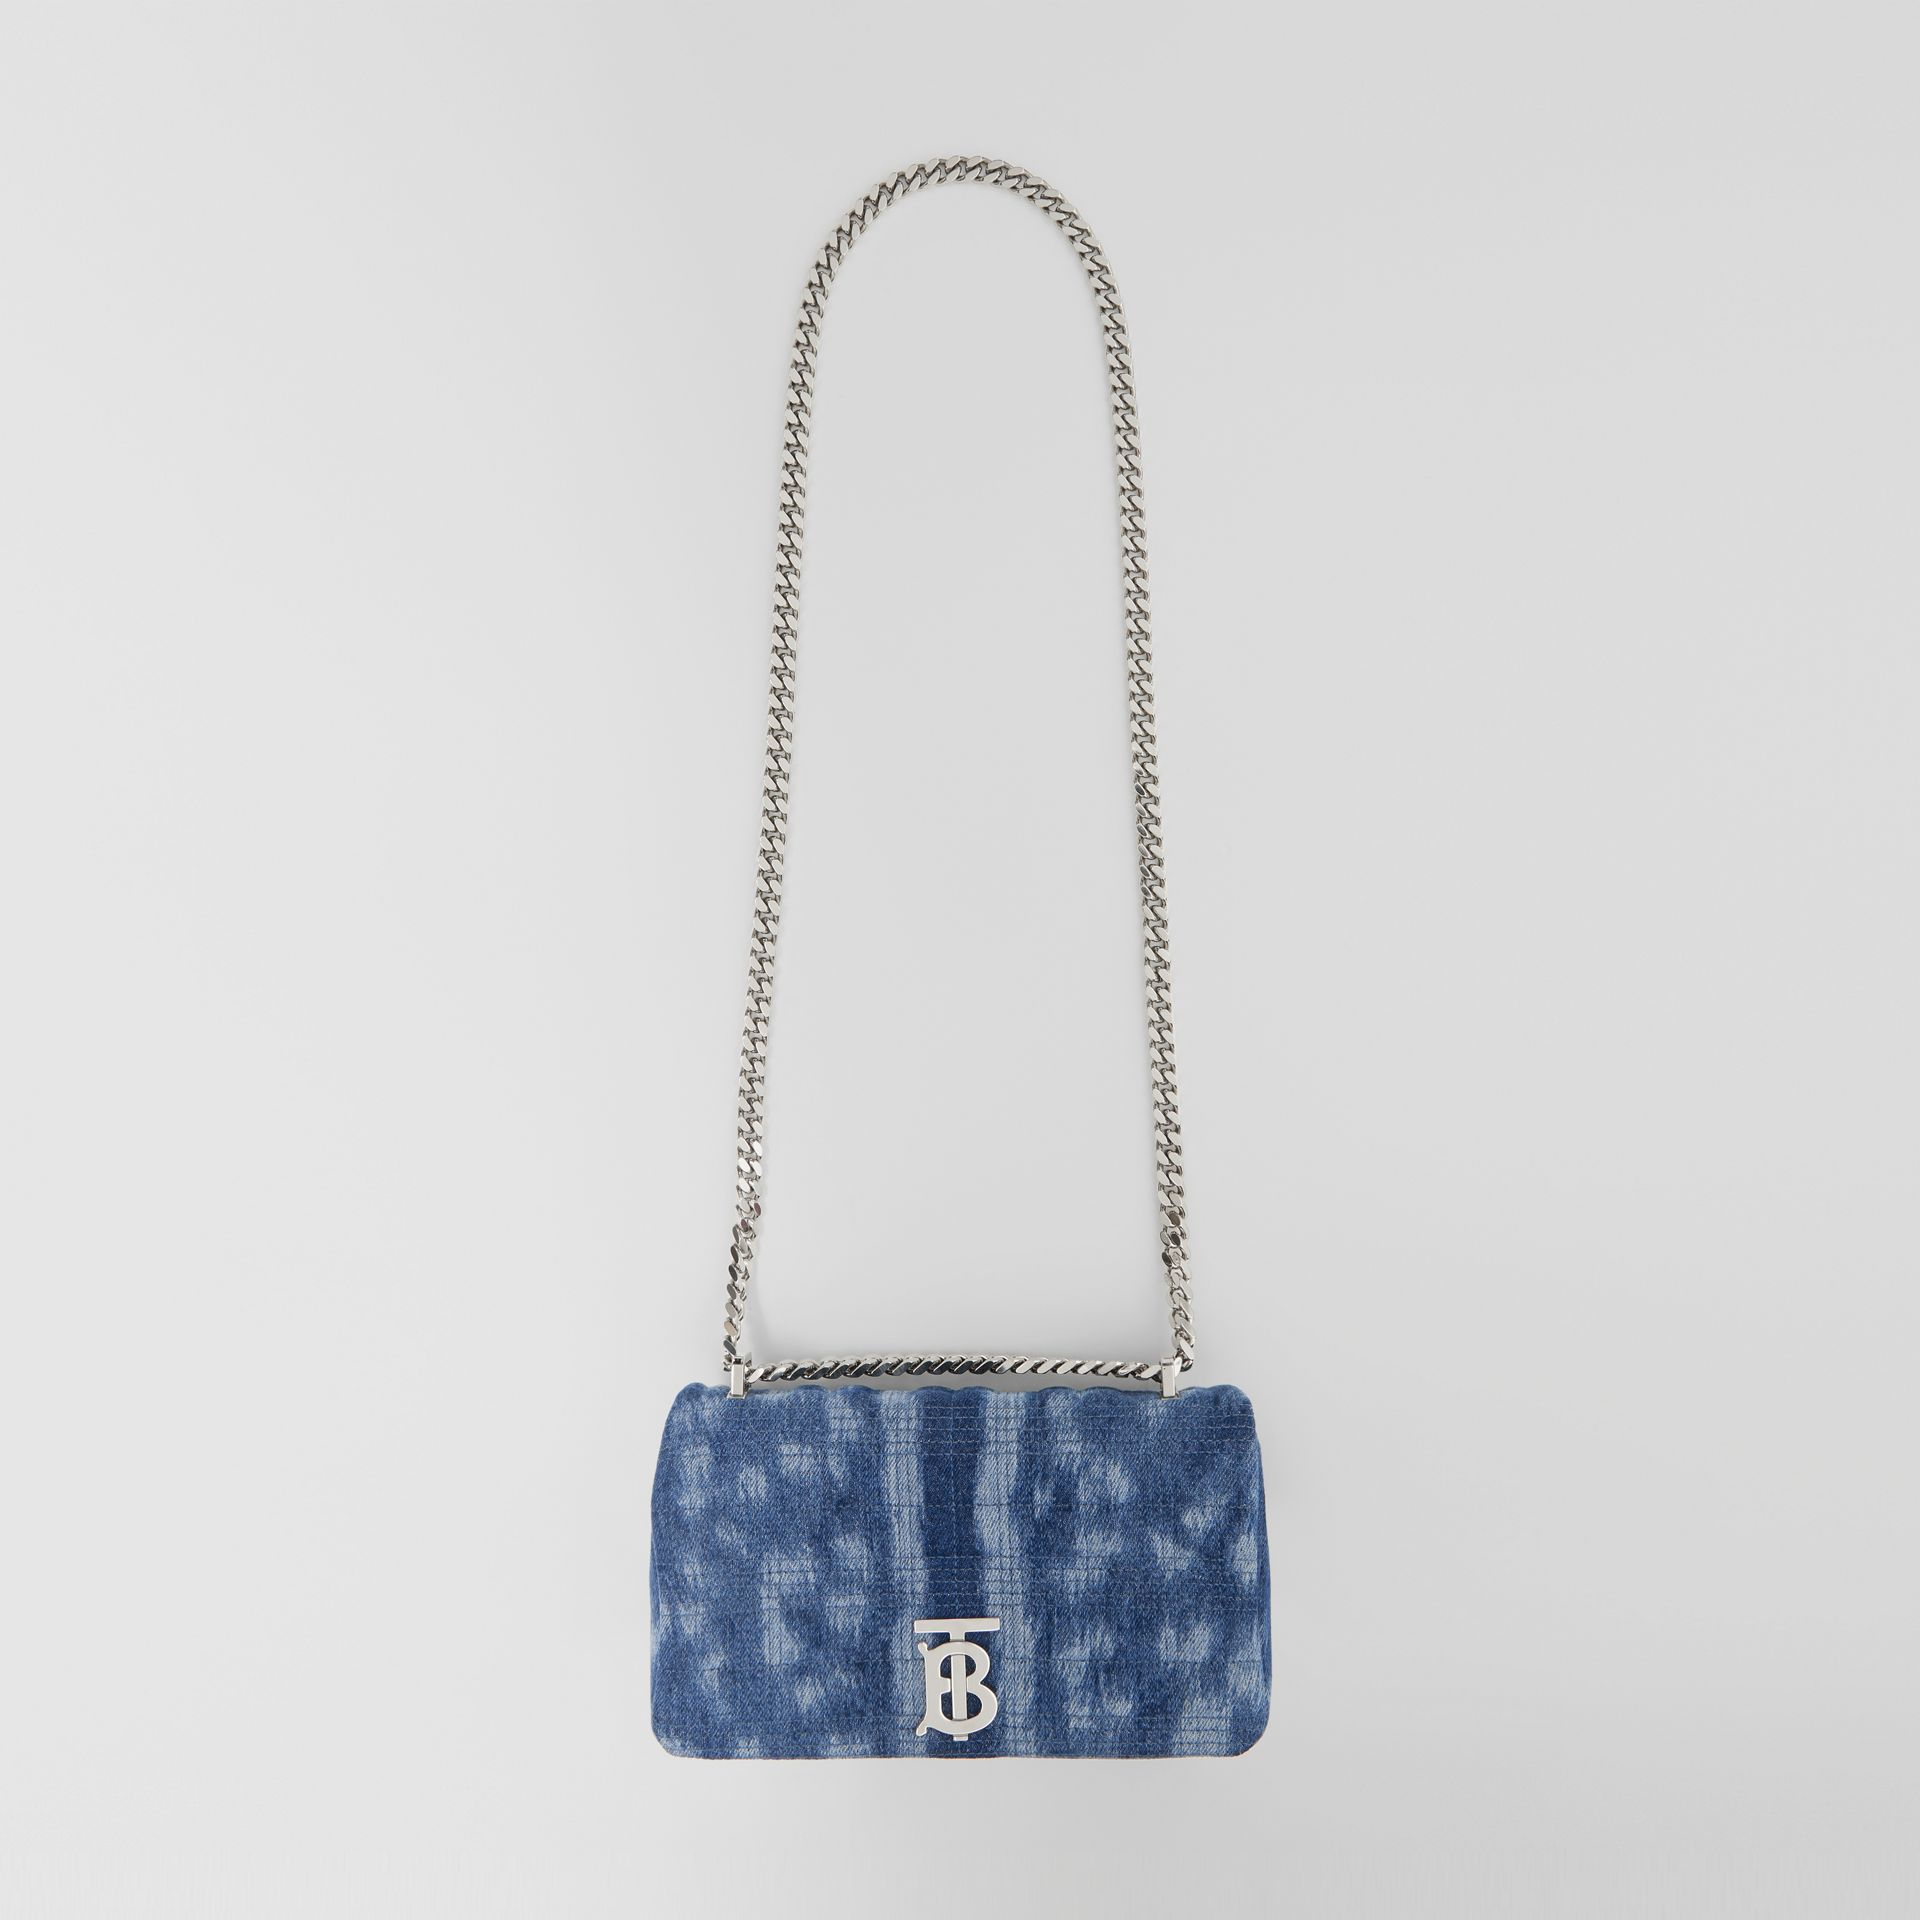 Petit sac Lola en denim matelassé (Bleu) | Burberry - photo de la galerie 3